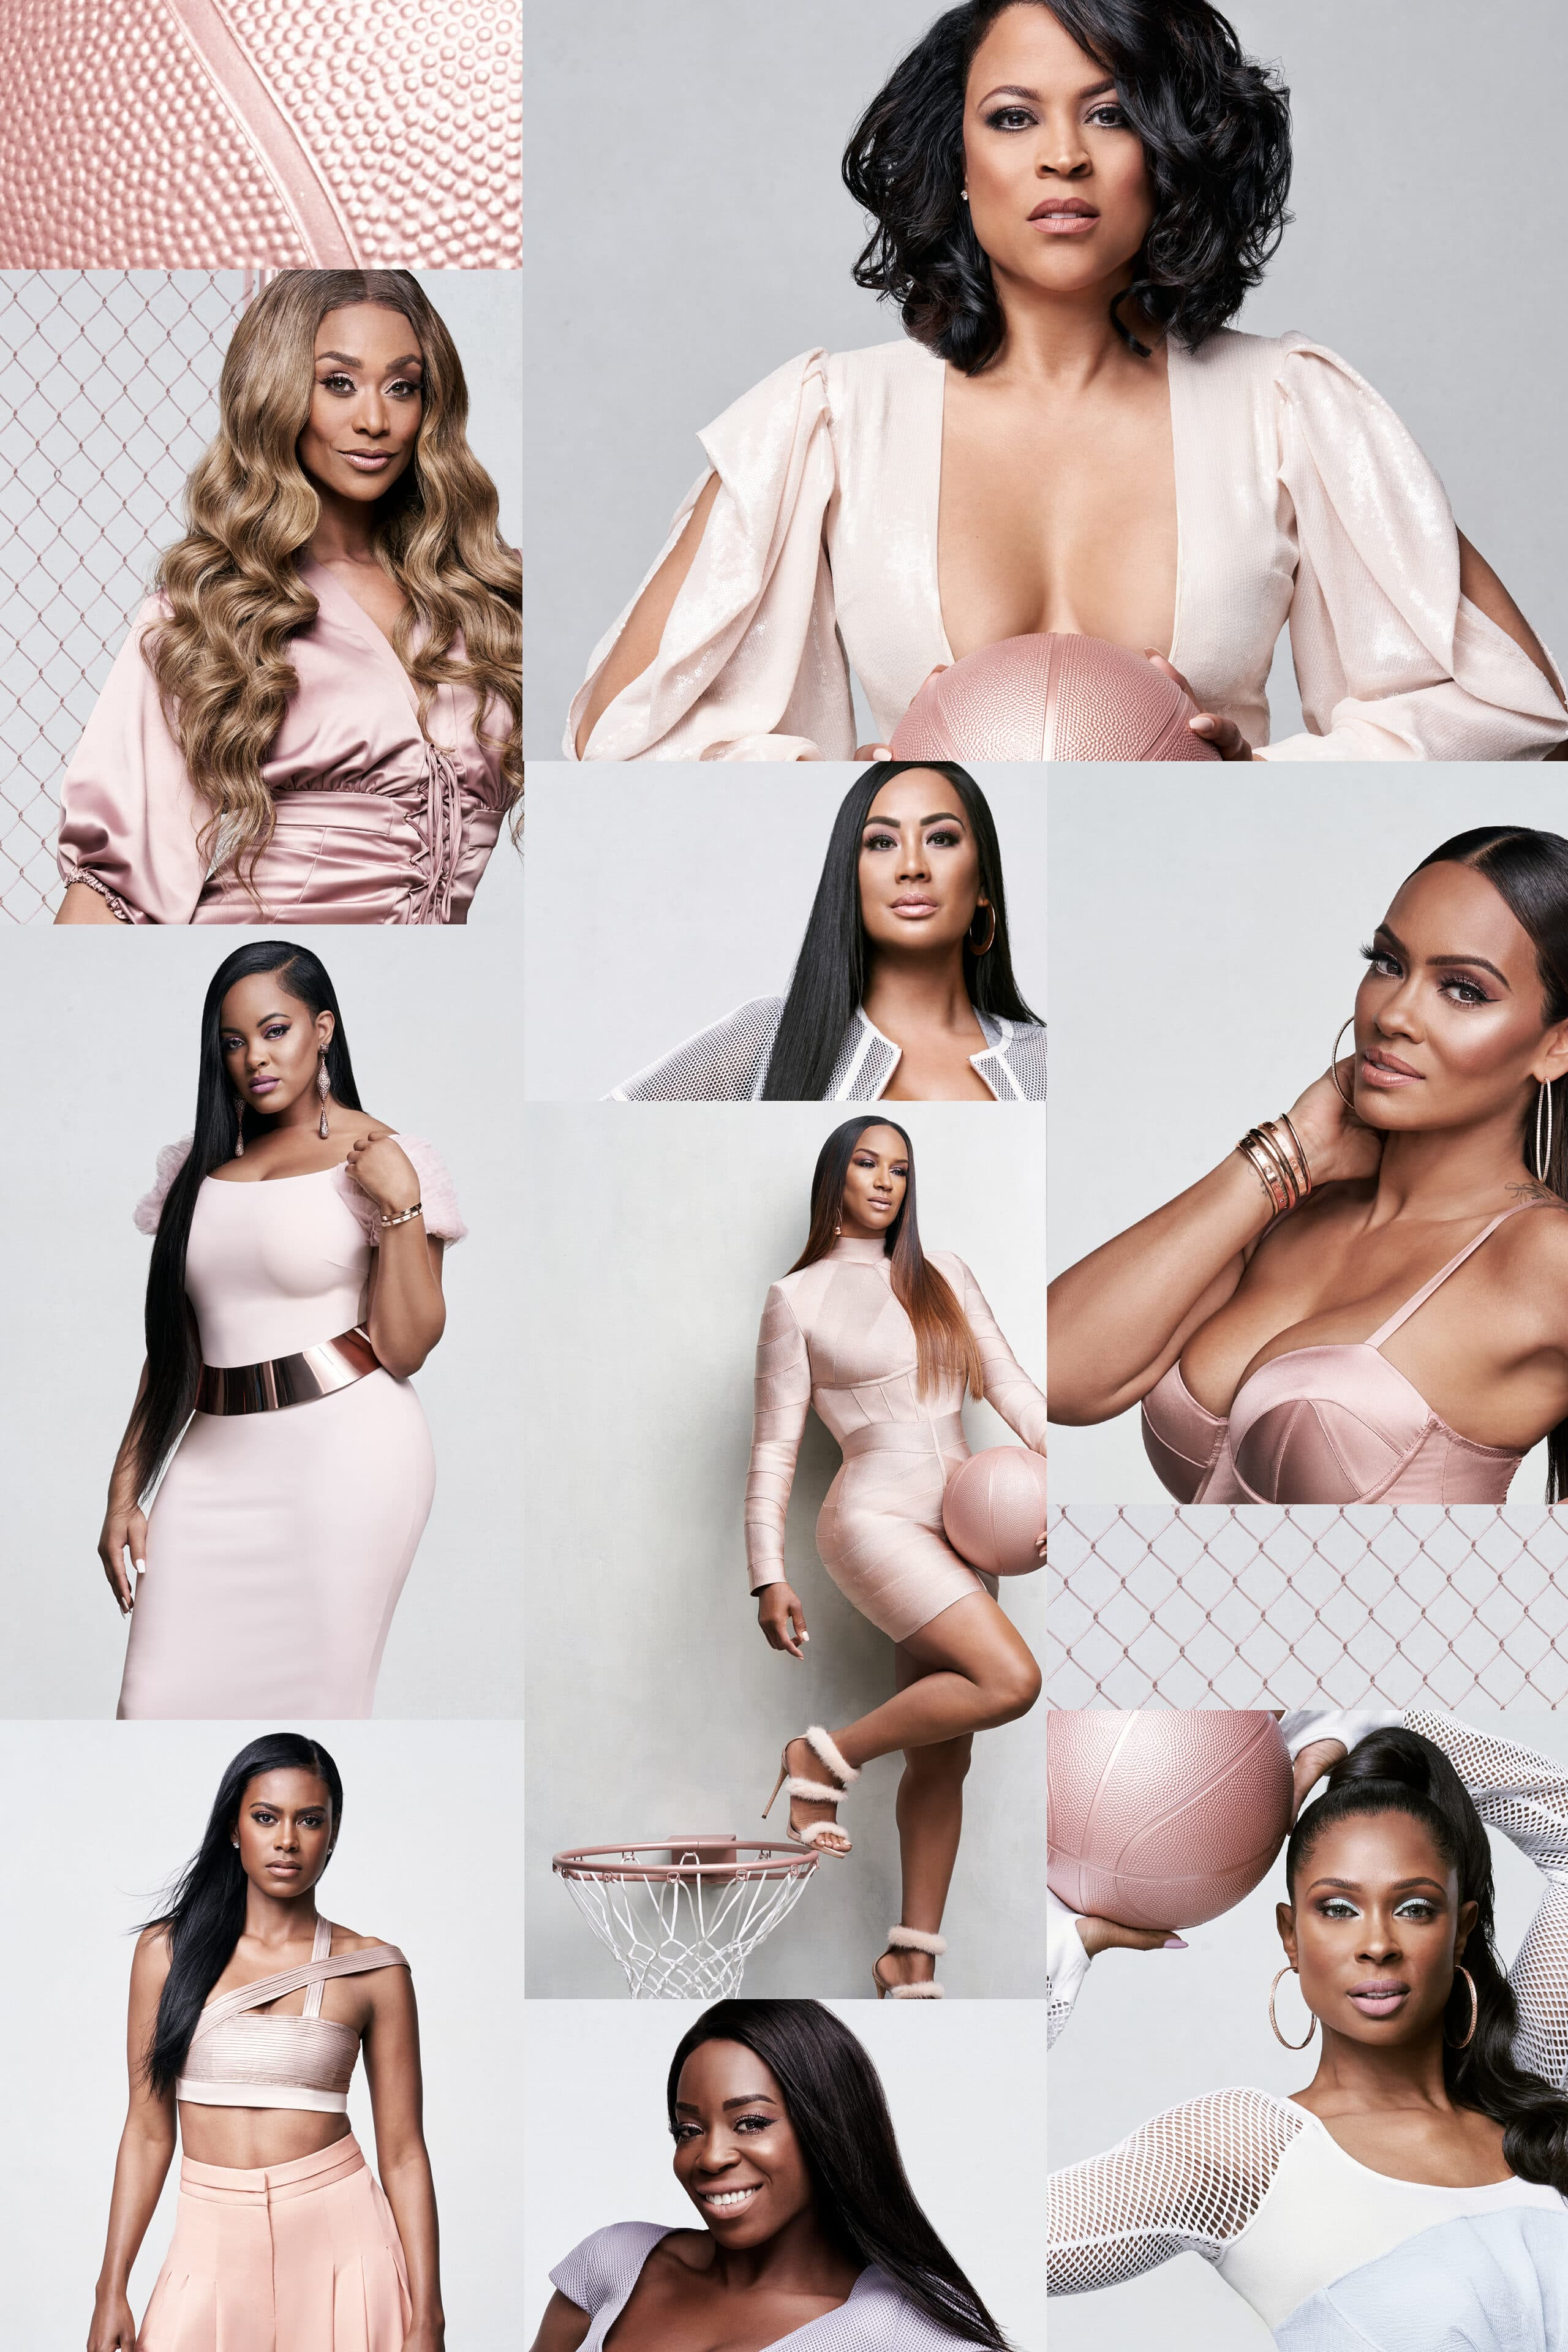 Basketball Wives Season 7 composite. (Credit: VH1)